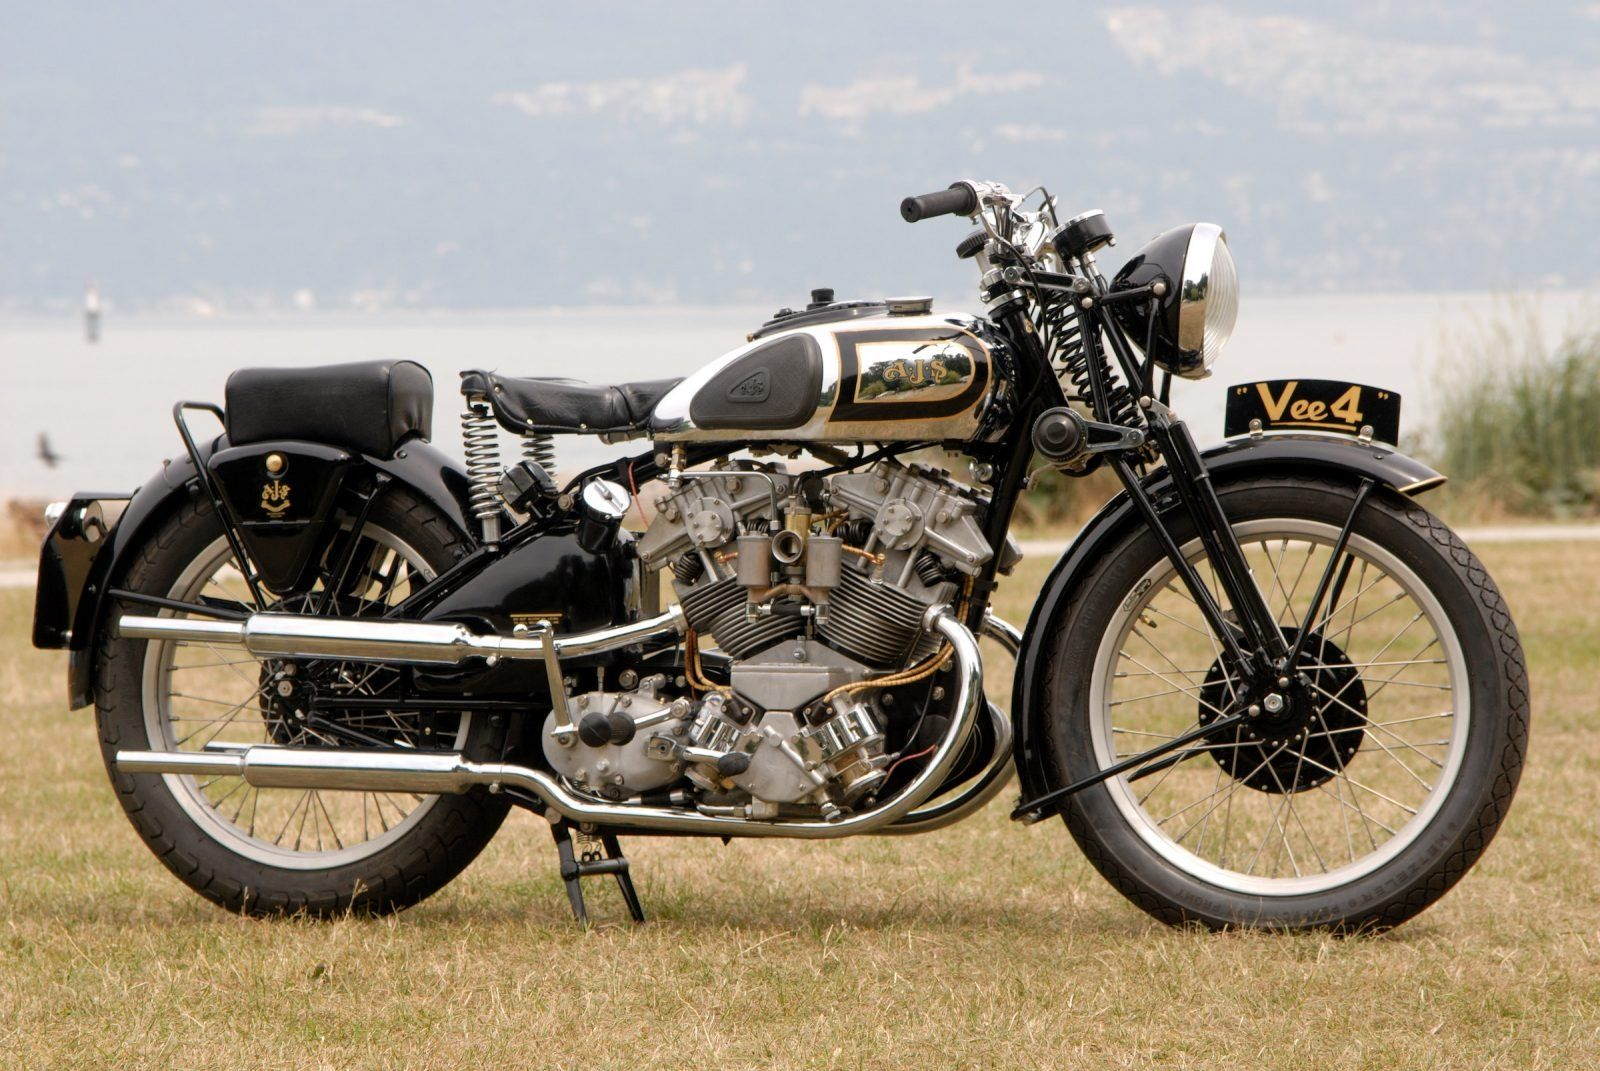 Resurrecting The Mighty Ajs V4 From 1936 Bobber Motorcycle Vintage Motorcycles British Motorcycles